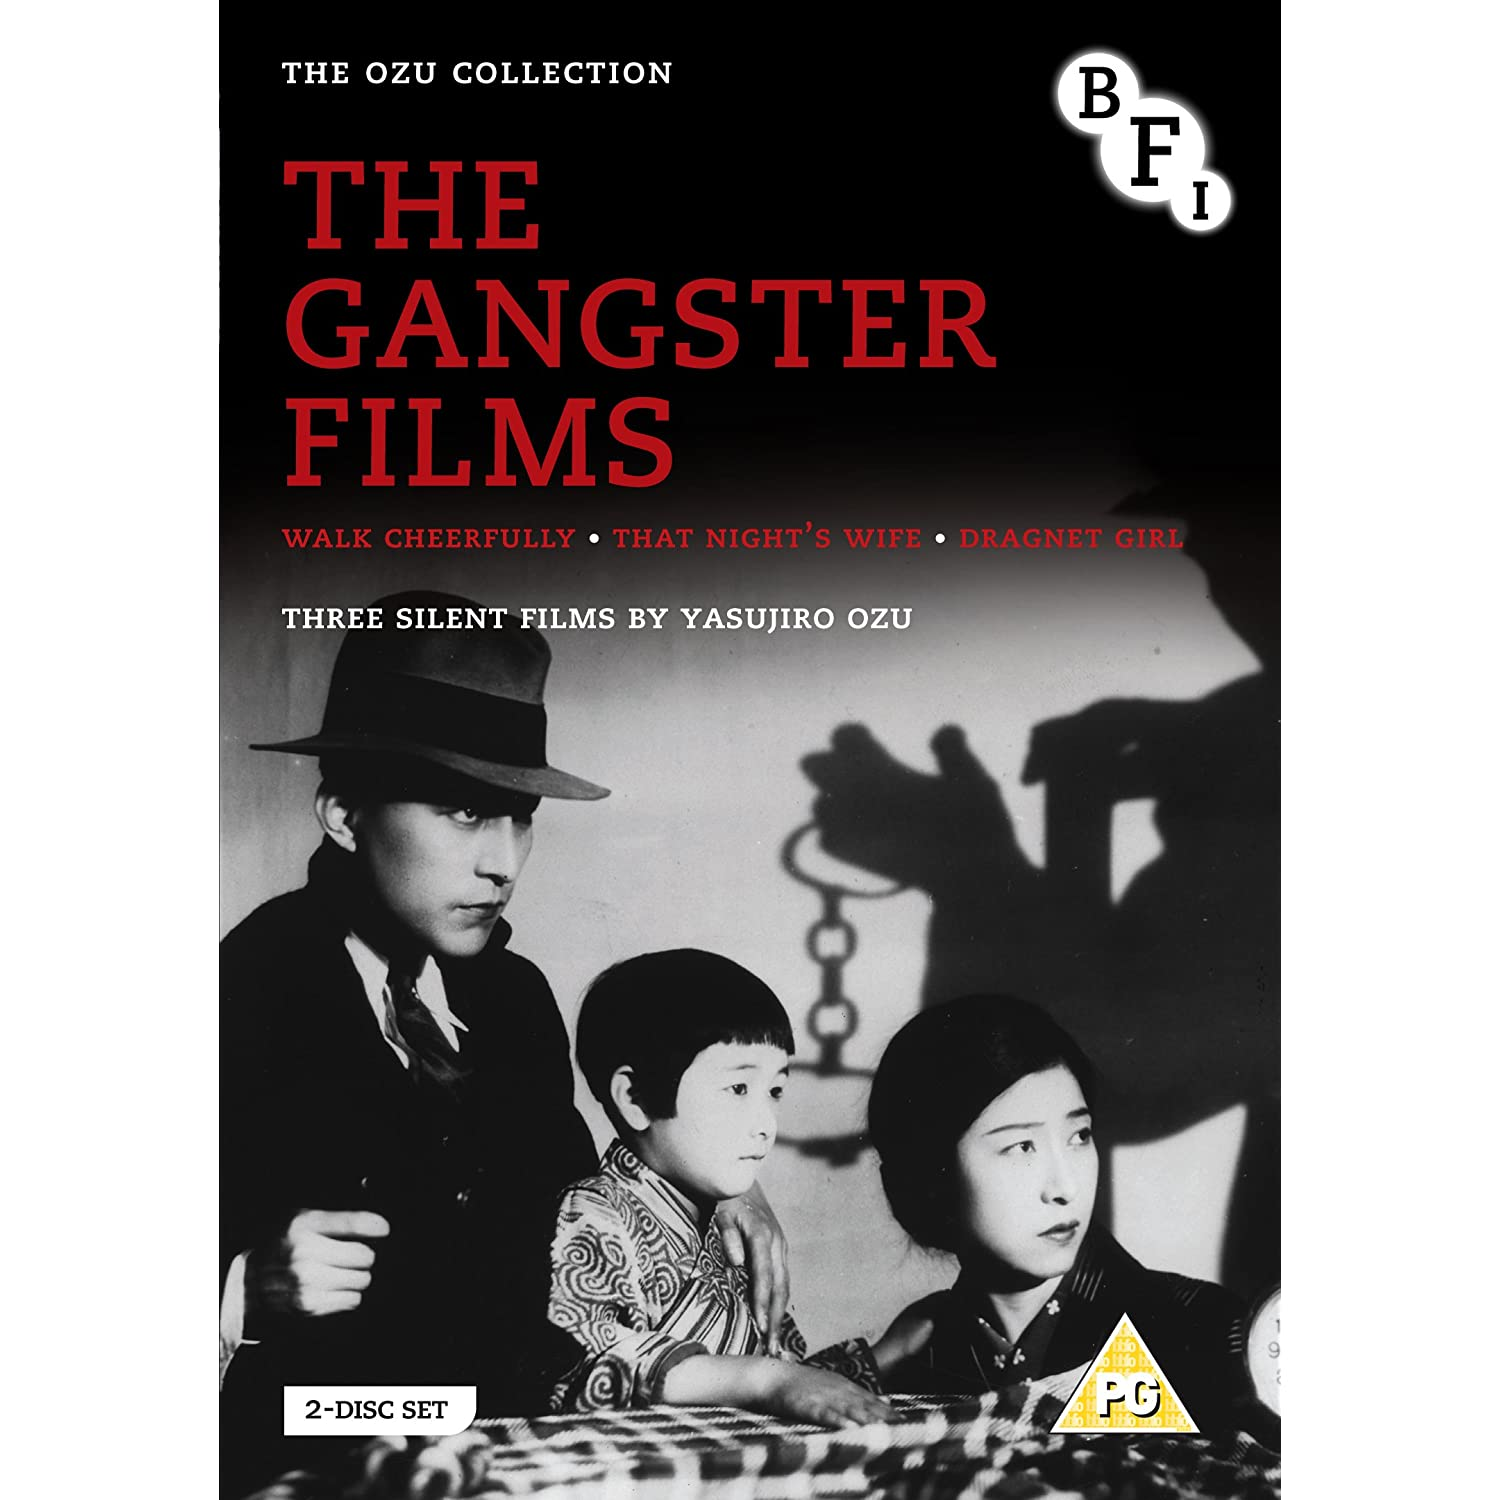 Ozu Collection – the Gangster Films